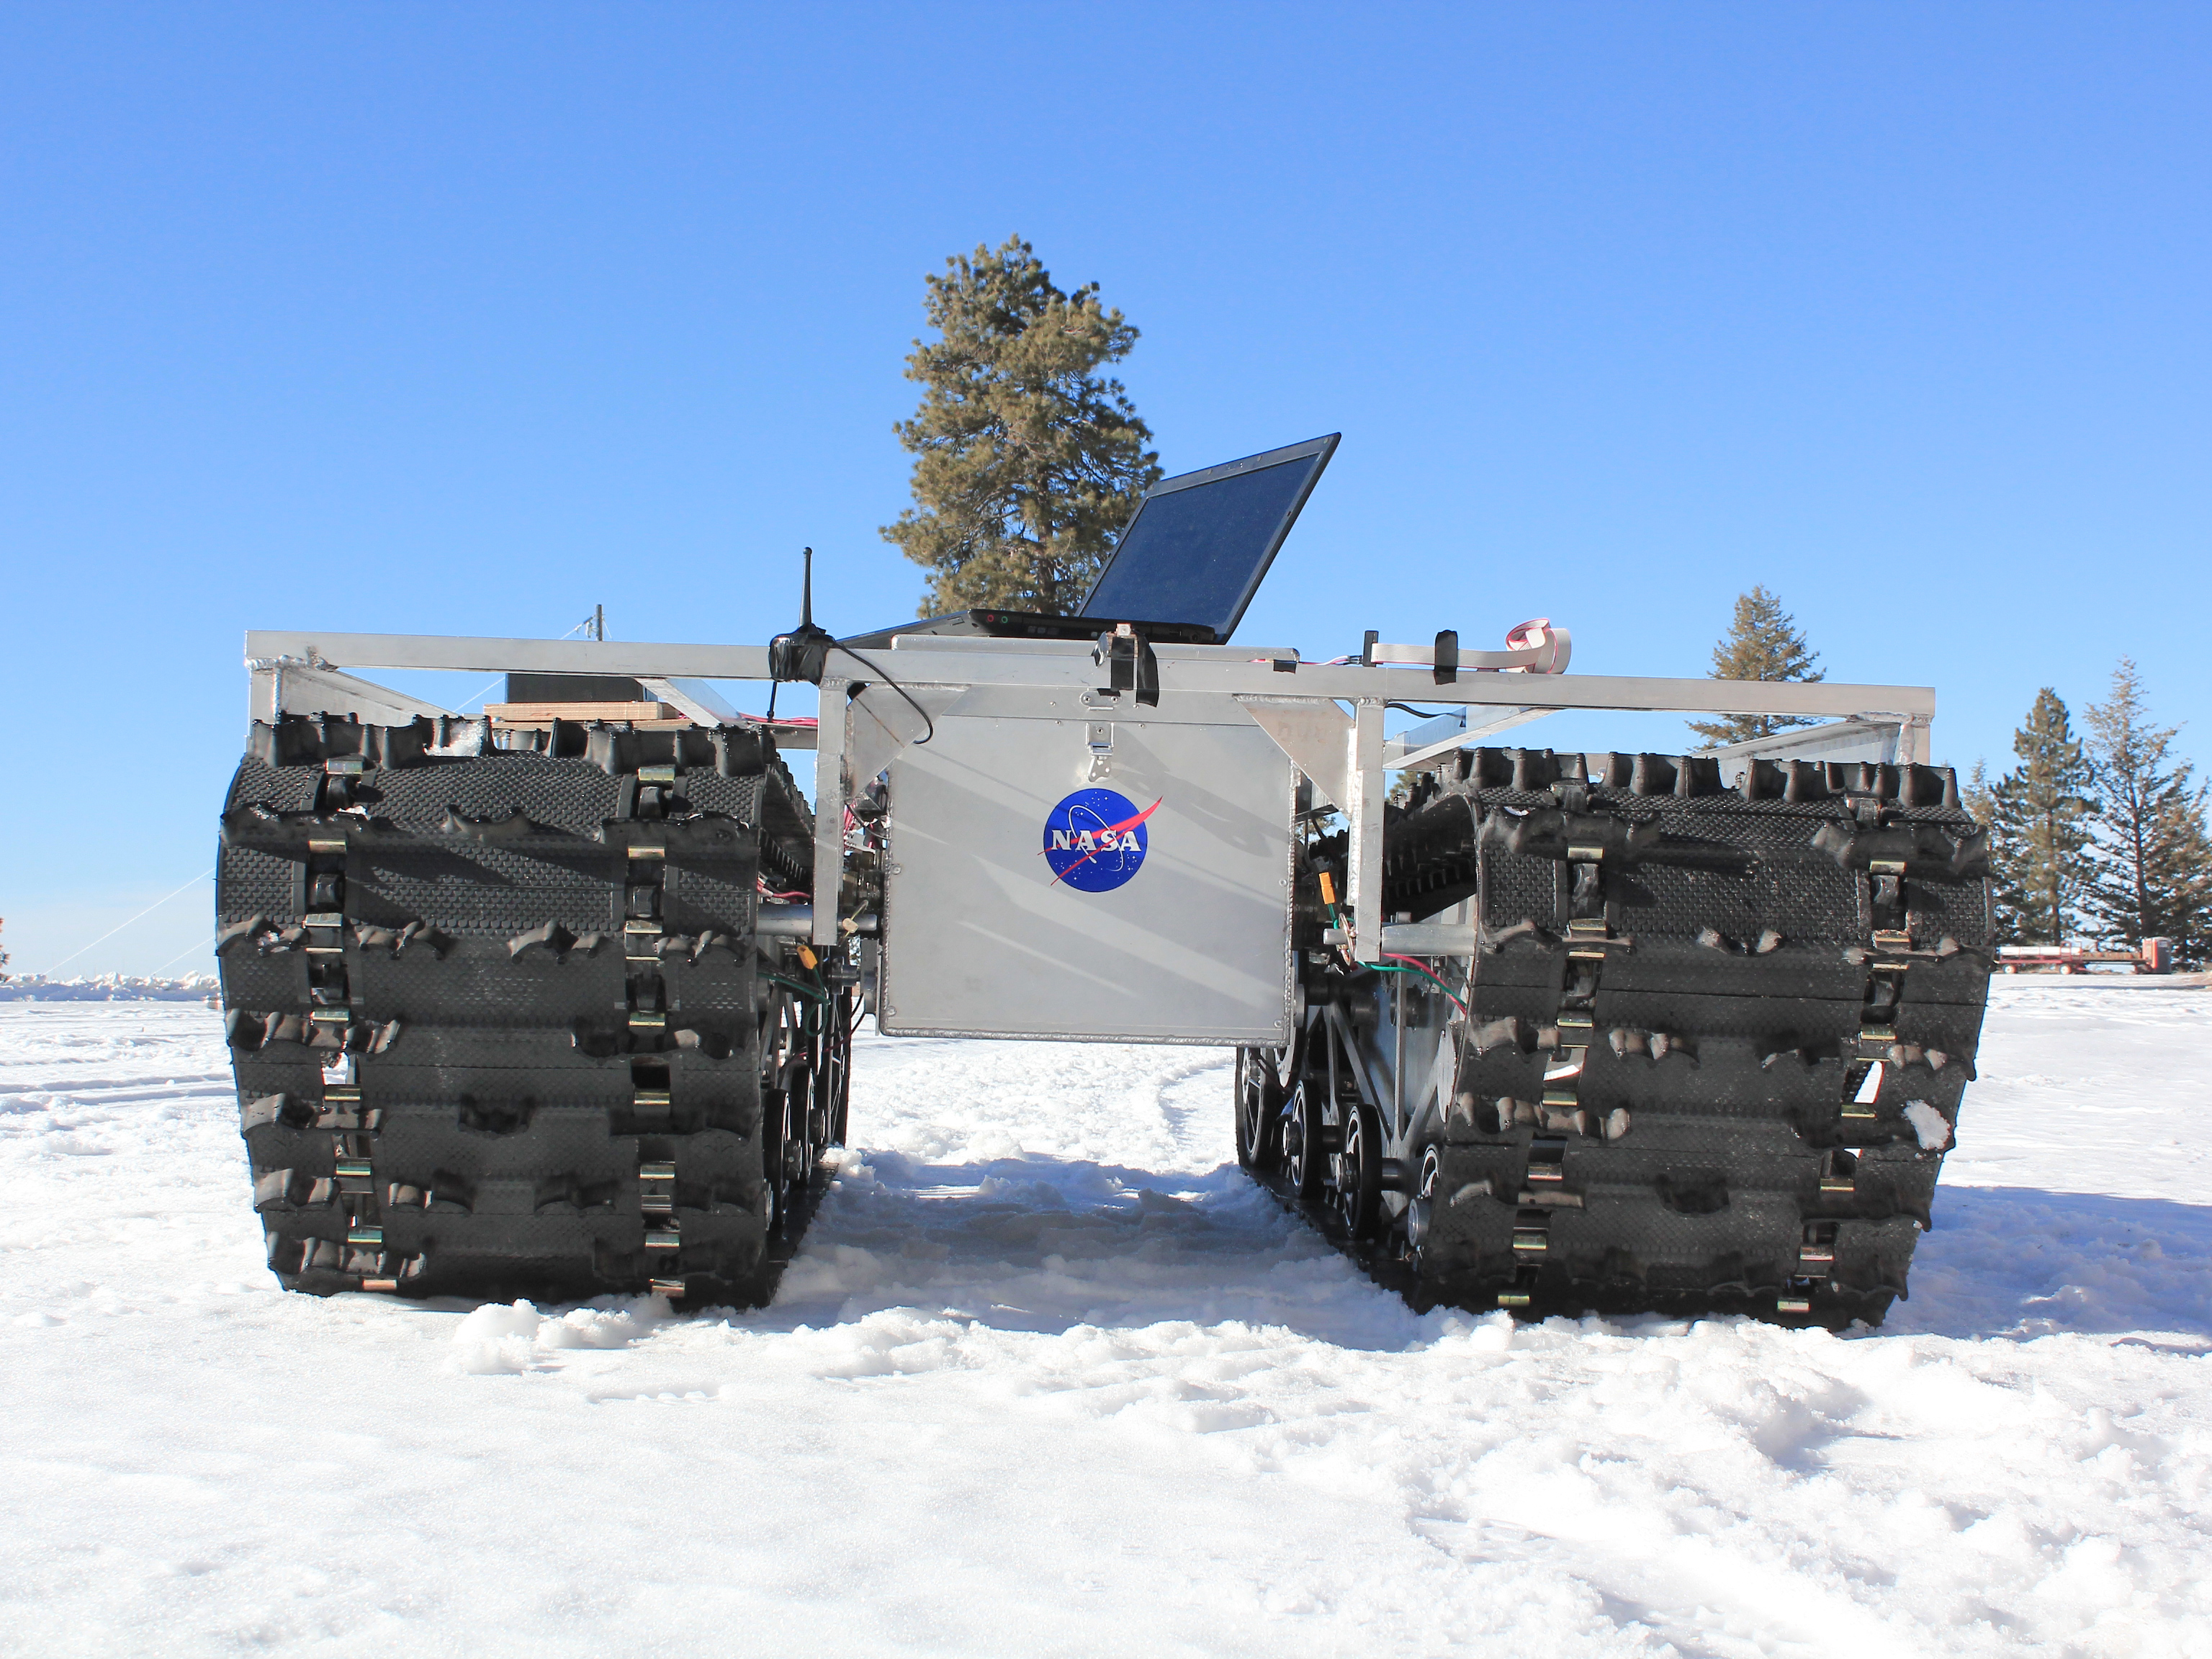 A prototype of GROVER, minus its solar panels, was tested in January 2012 at a ski resort in Idaho. The laptop in the picture is for testing purposes only and is not mounted on the final prototype. Credit: Gabriel Trisca, Boise State University